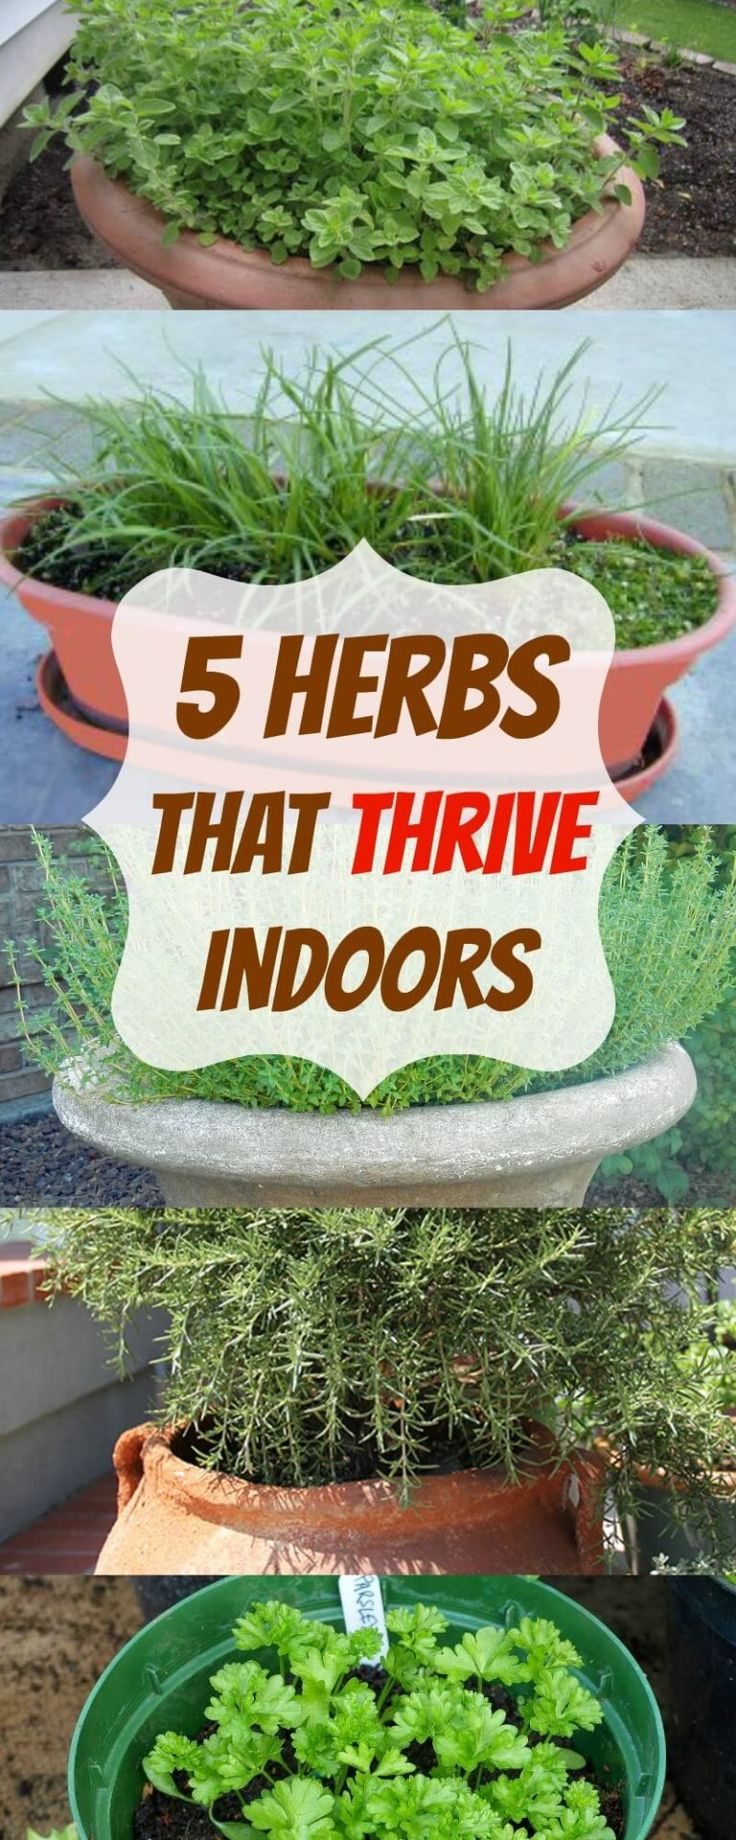 5 Herbs That Thrive Indoors ,  Christina T